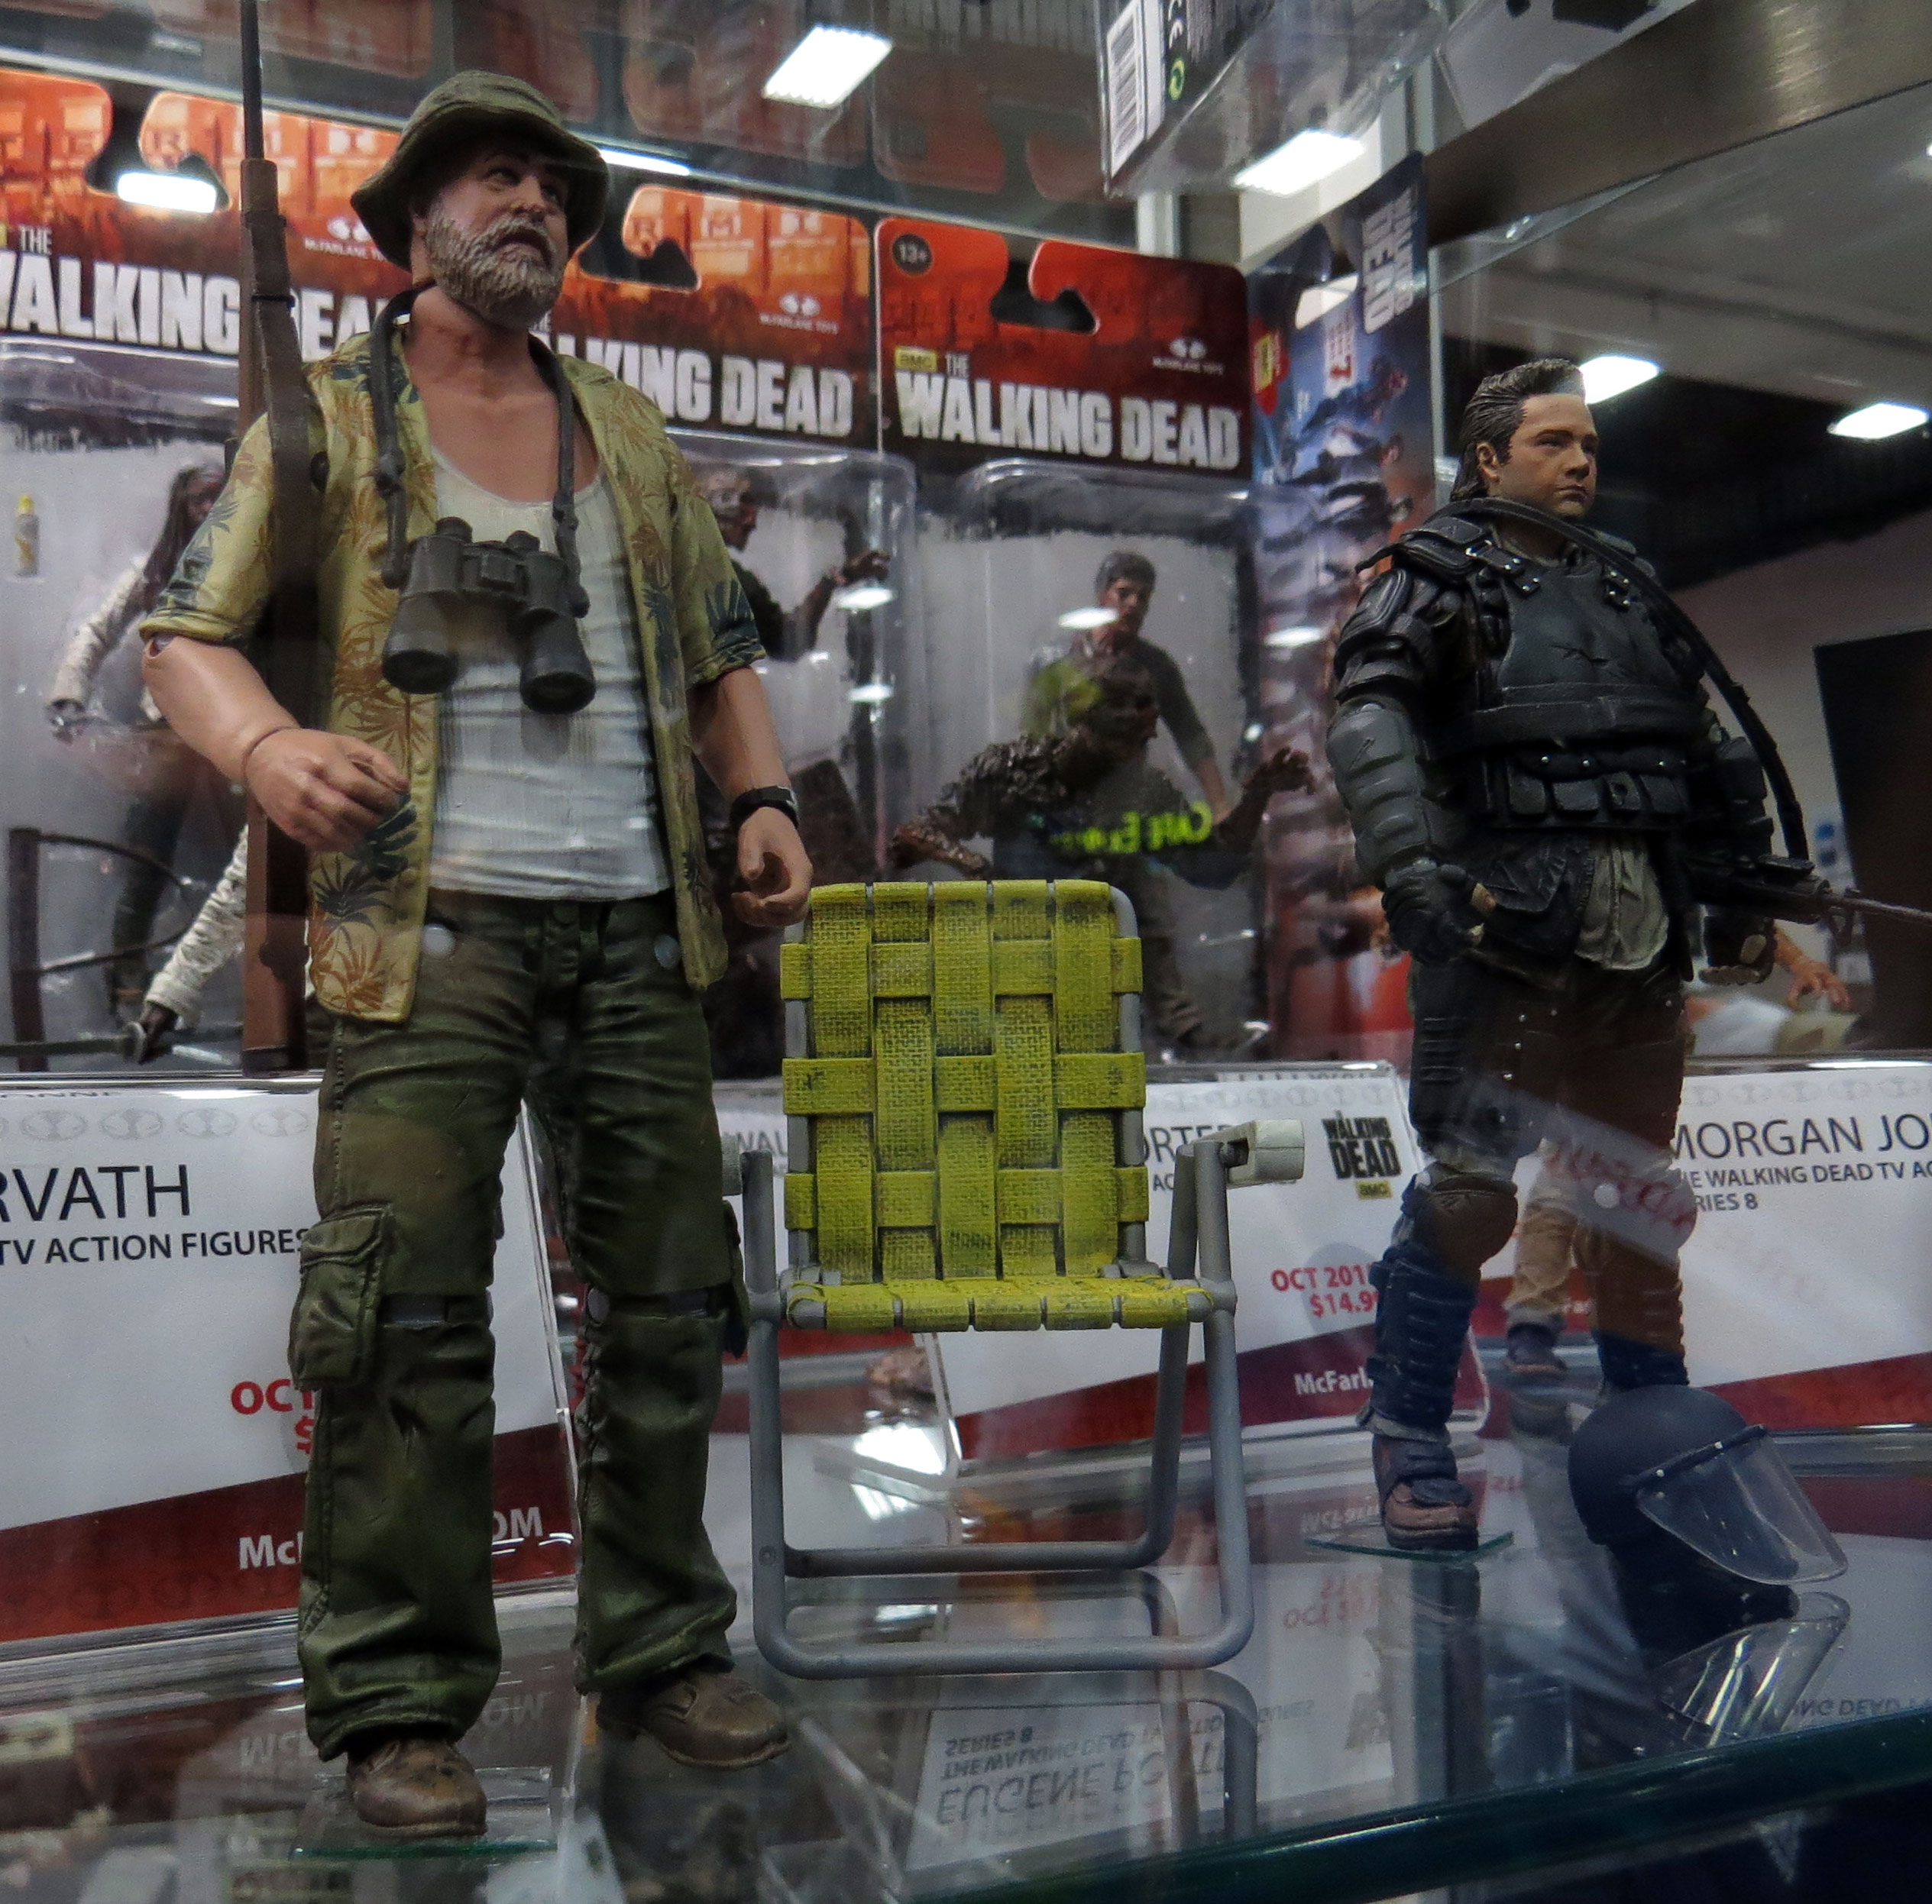 sdcc2015-07-09-mcfarlane-toys-booth-05